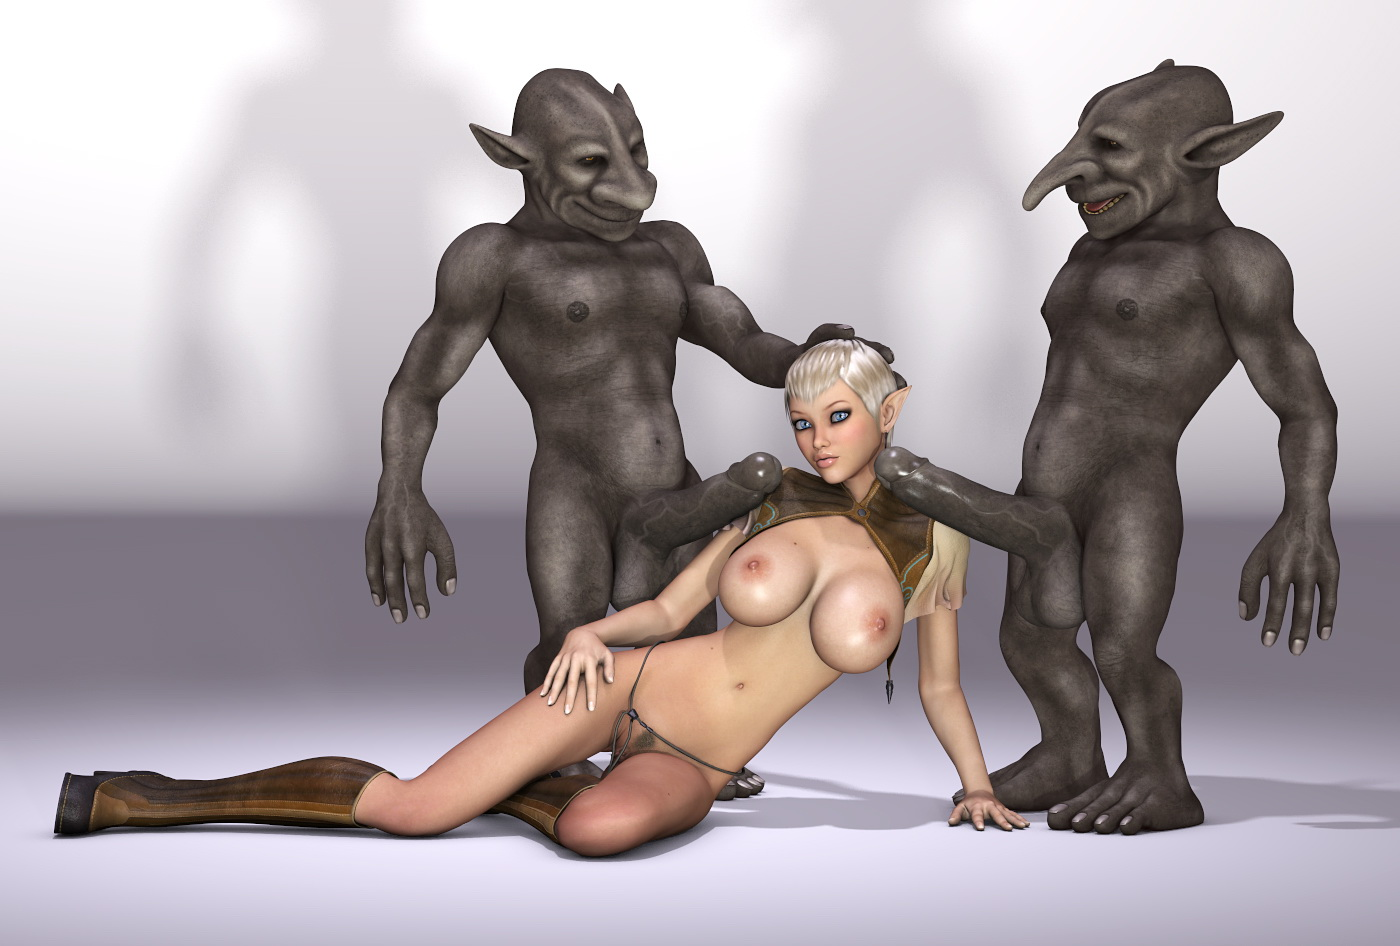 3d sex cartoon elf fucked images